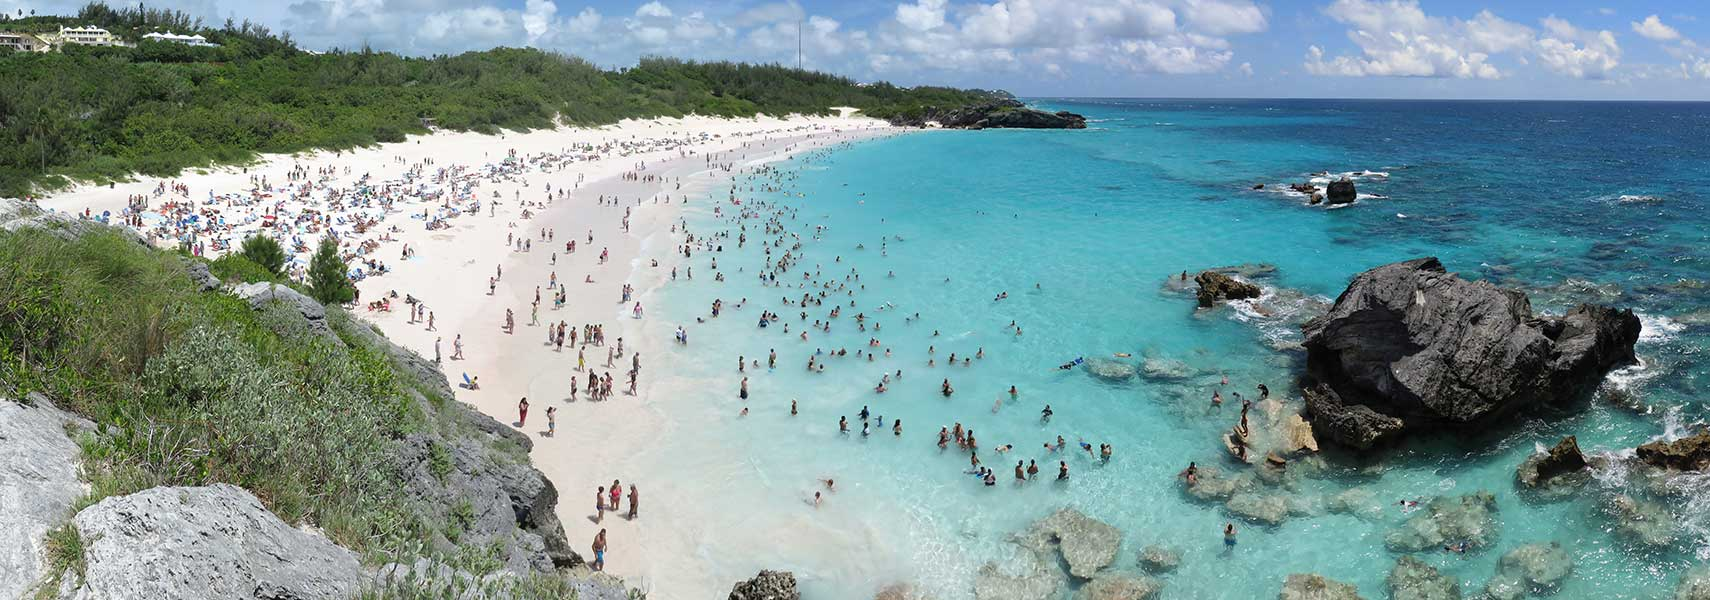 Bermuda Country Profile Visitors Guide